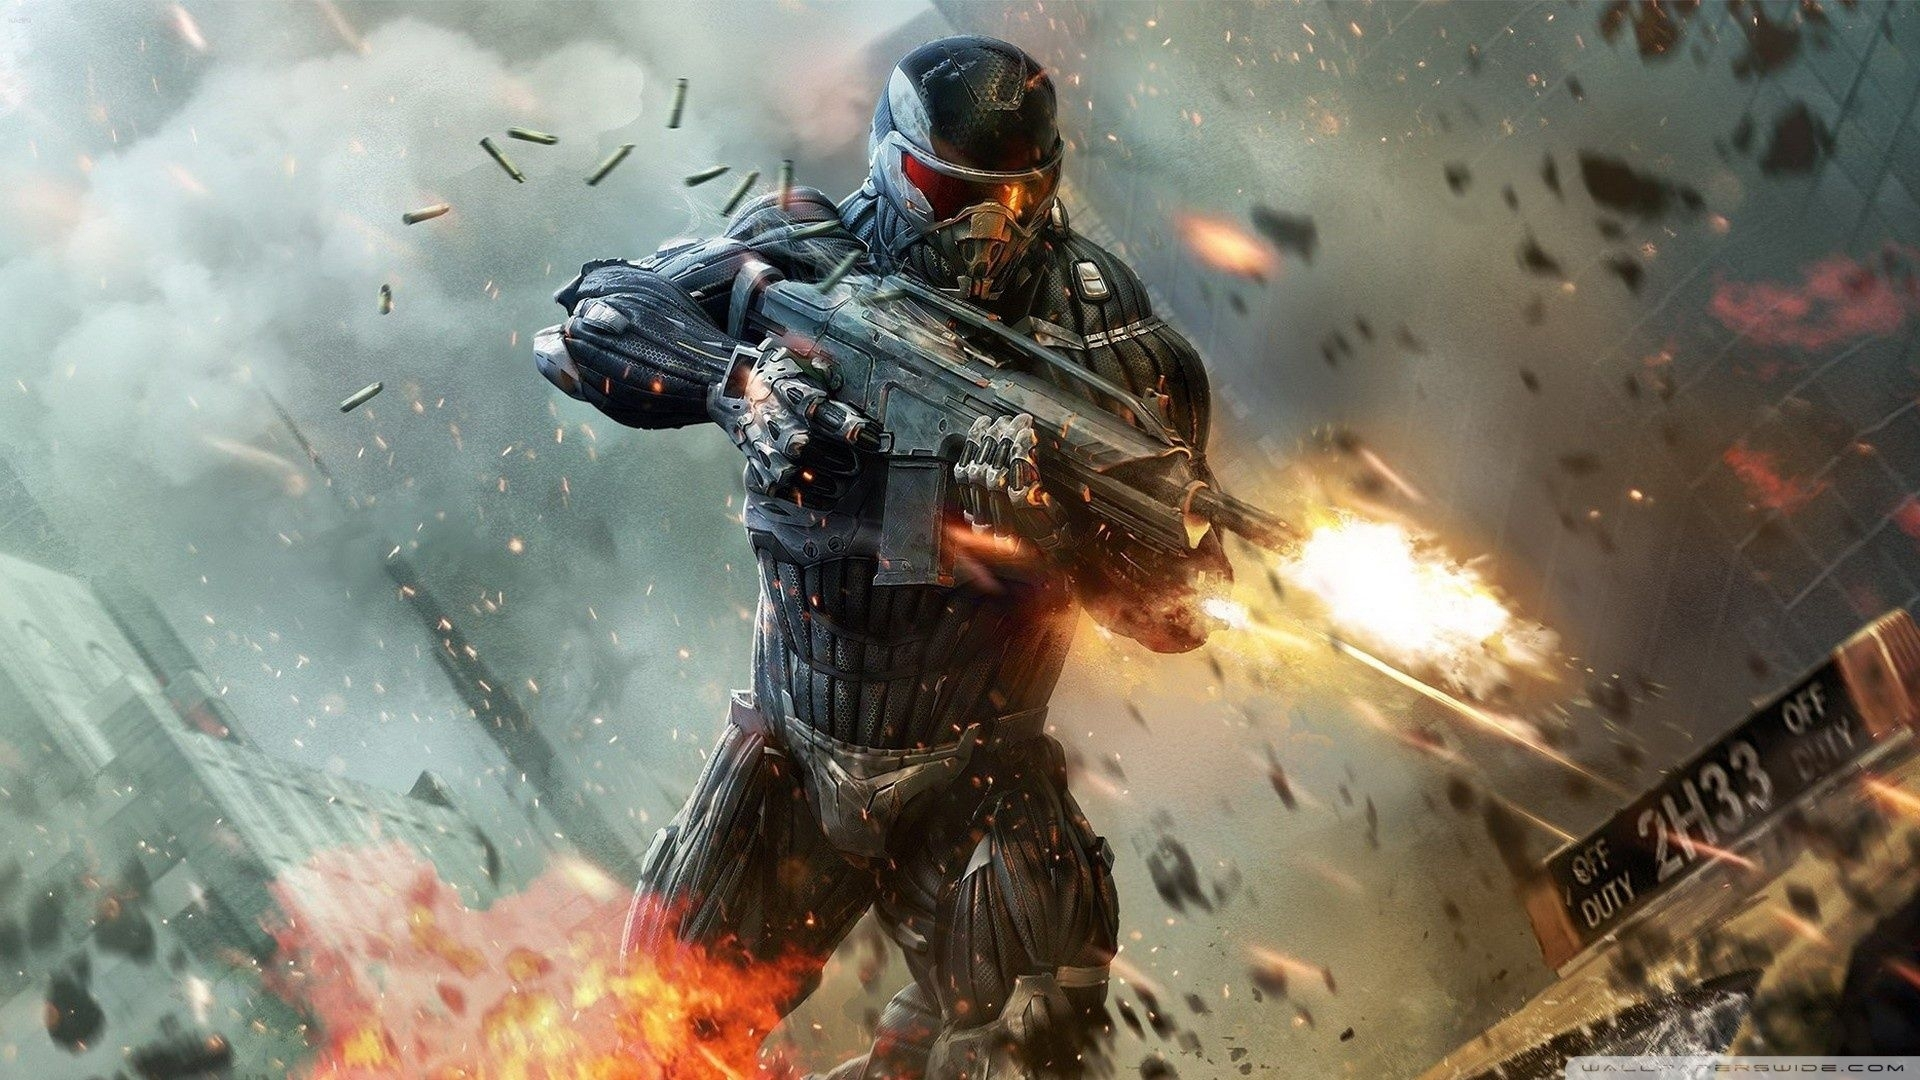 video games wallpaper 1920x1080 hd 1080p 12 hd wallpapers